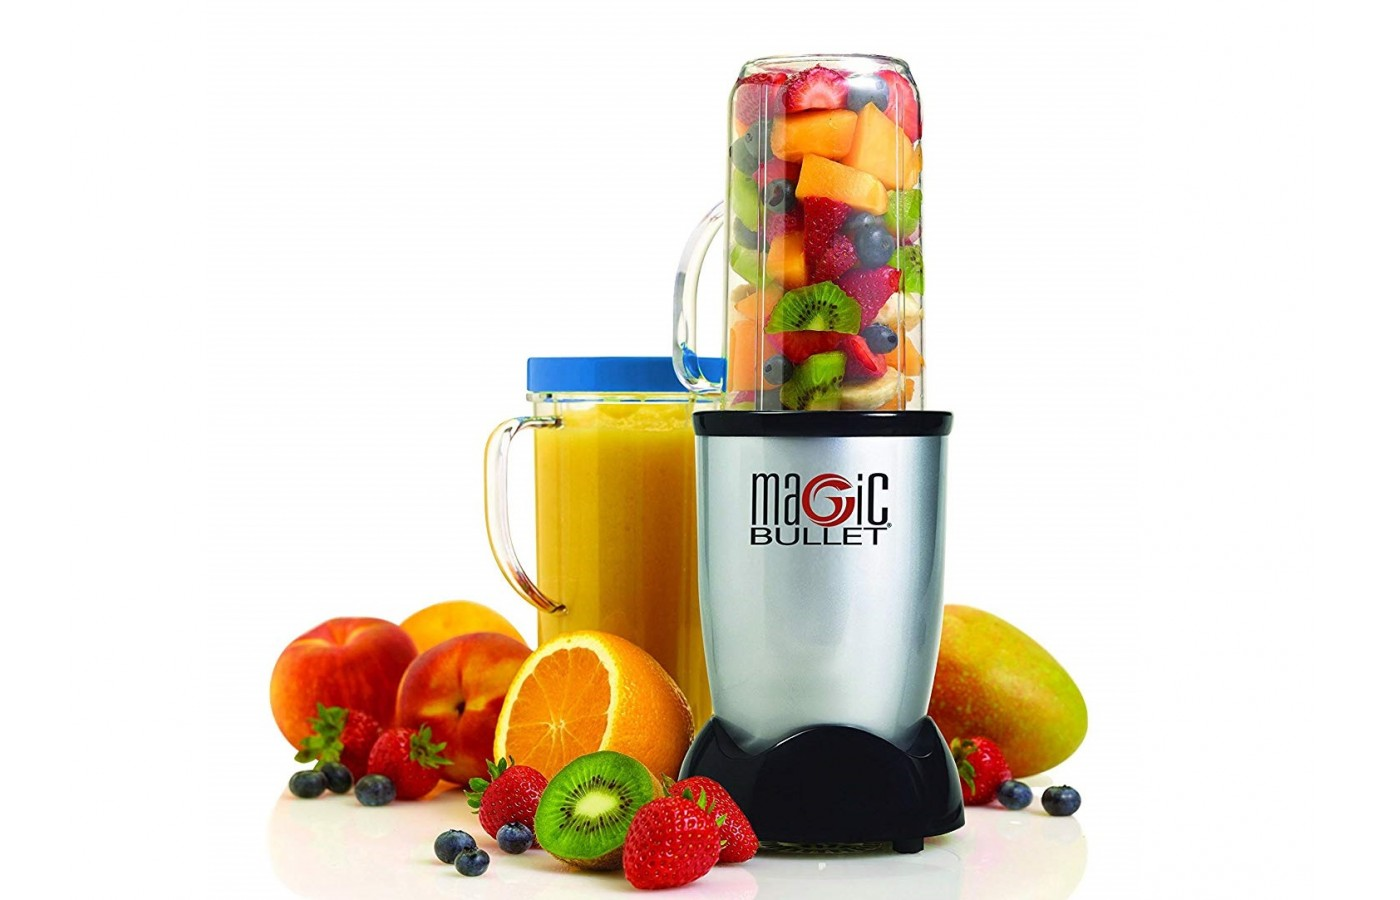 The Magic Bullet offers a cyclonic cutting zone in order to process food more effectively and in less time.